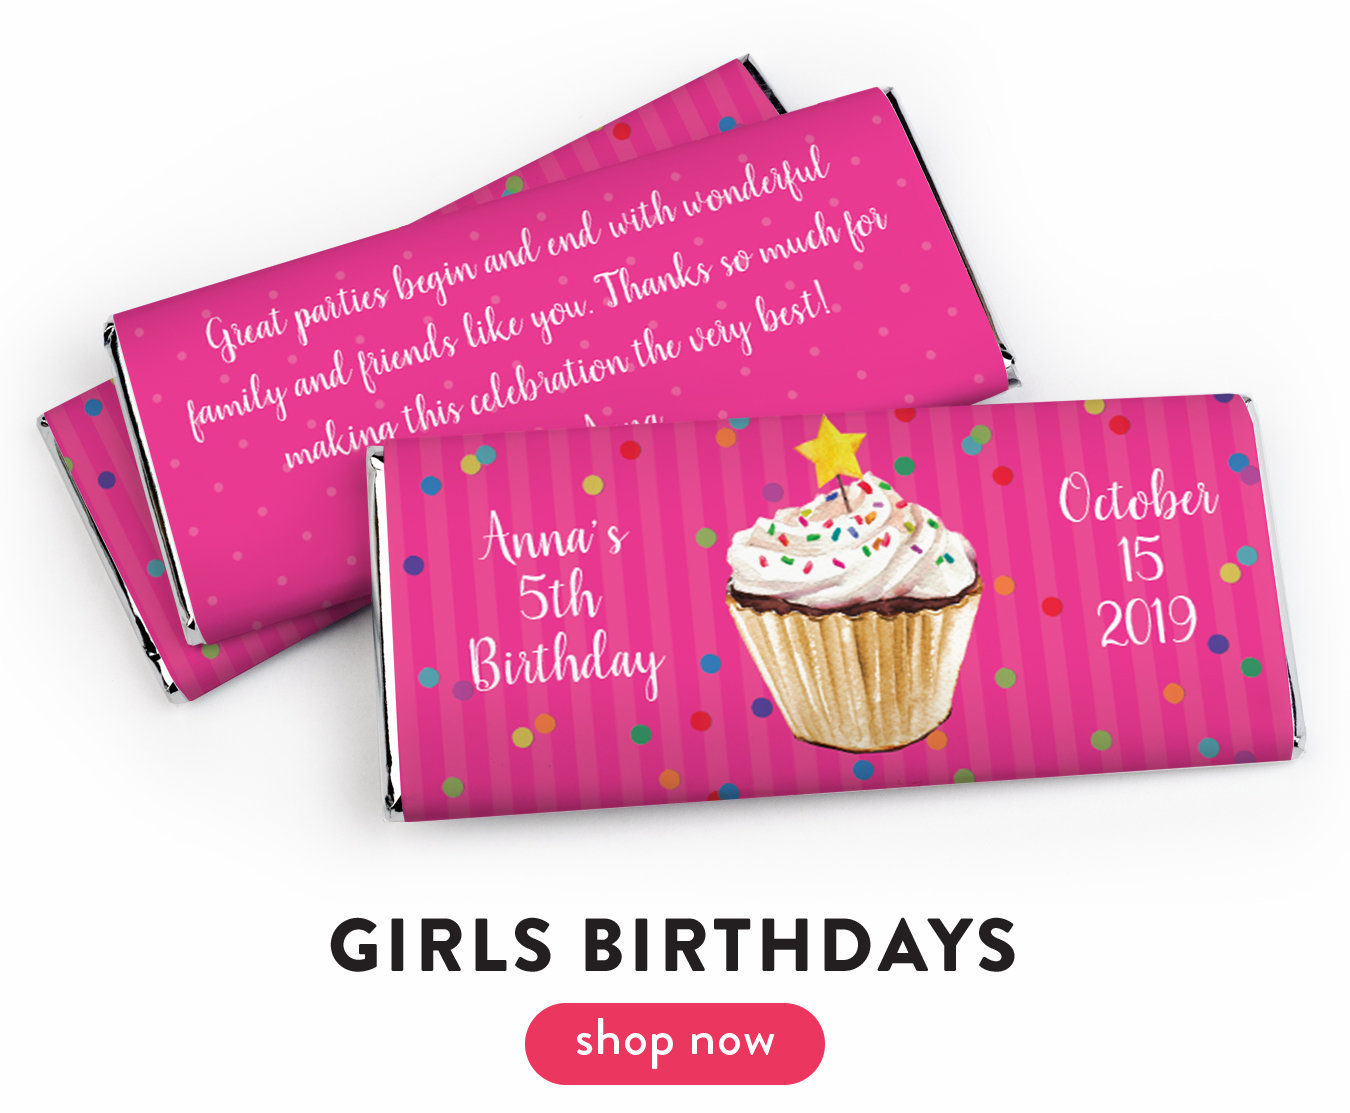 Girls Birthdays